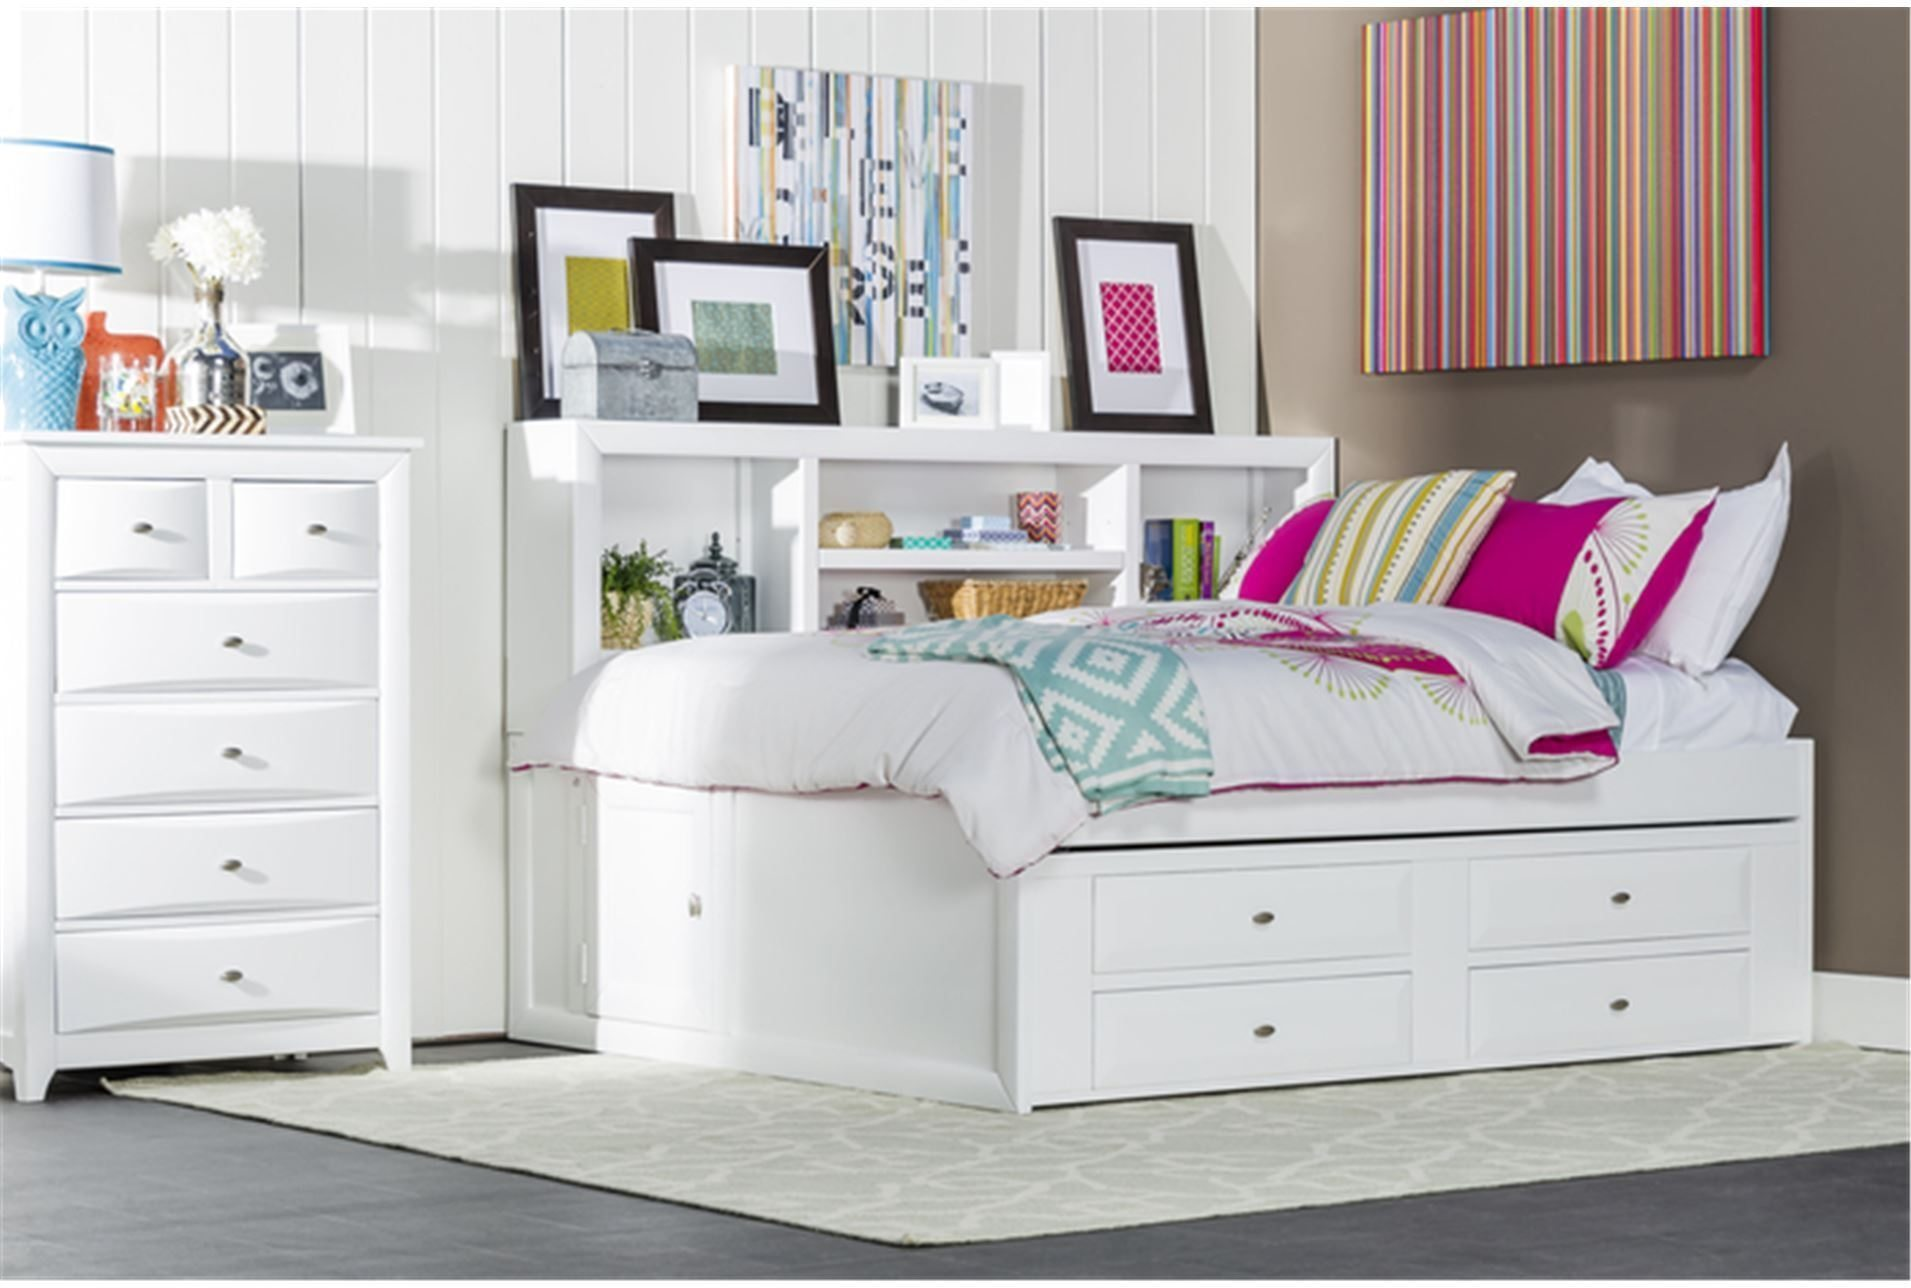 Trundle Bed With Storage Homifind